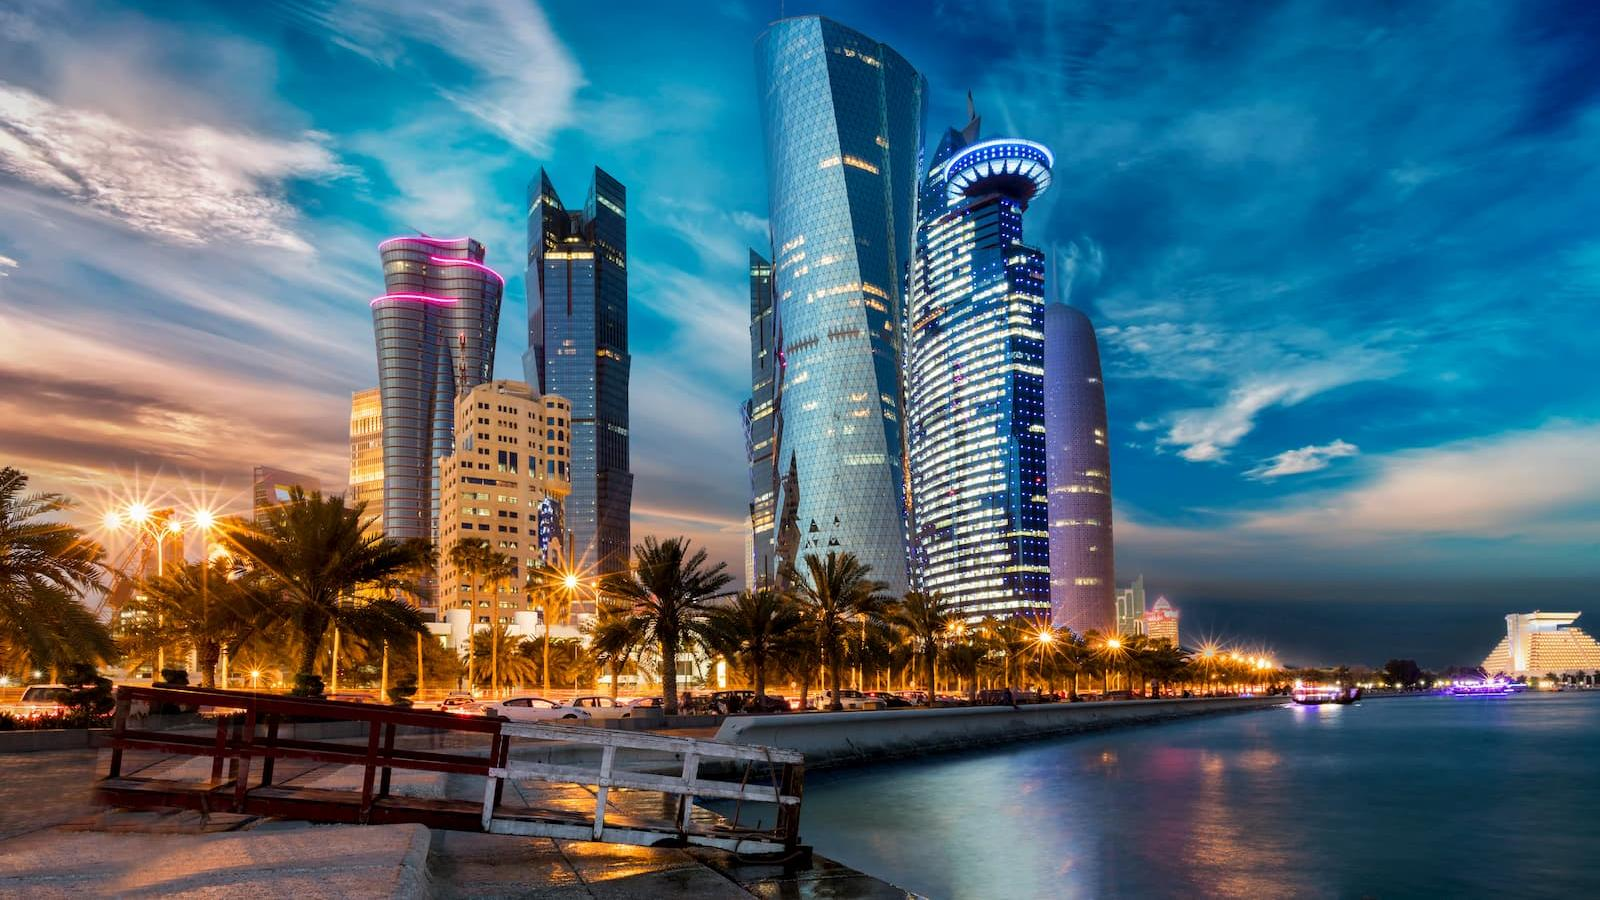 Qatar residents and visitors can apply for 'exceptional entry permit' from August 1